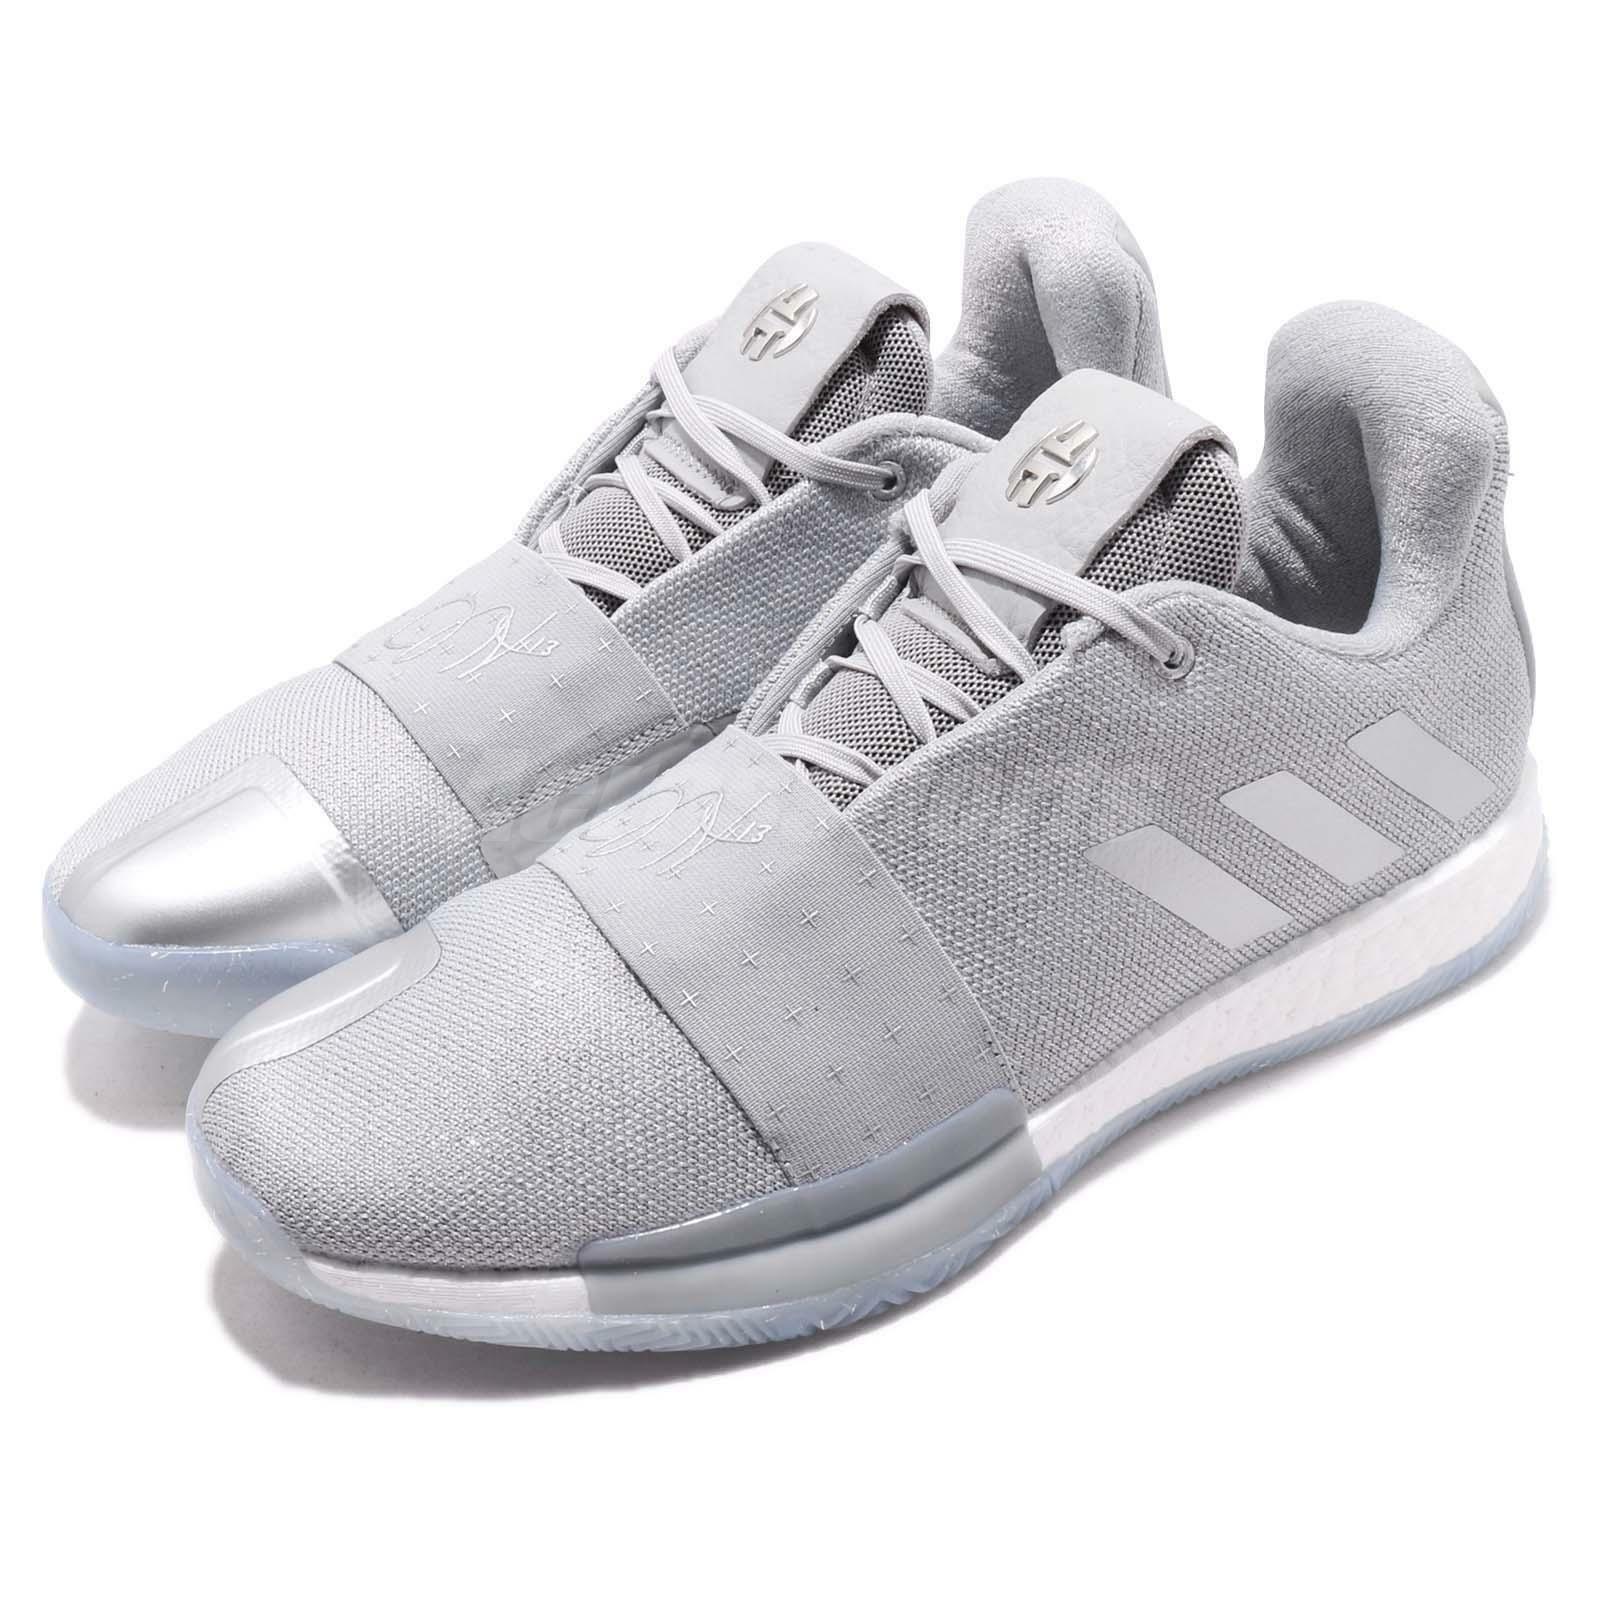 Adidas Harden Vol. 3 Boost James Grey White Men Basketball shoes Sneakers F36443